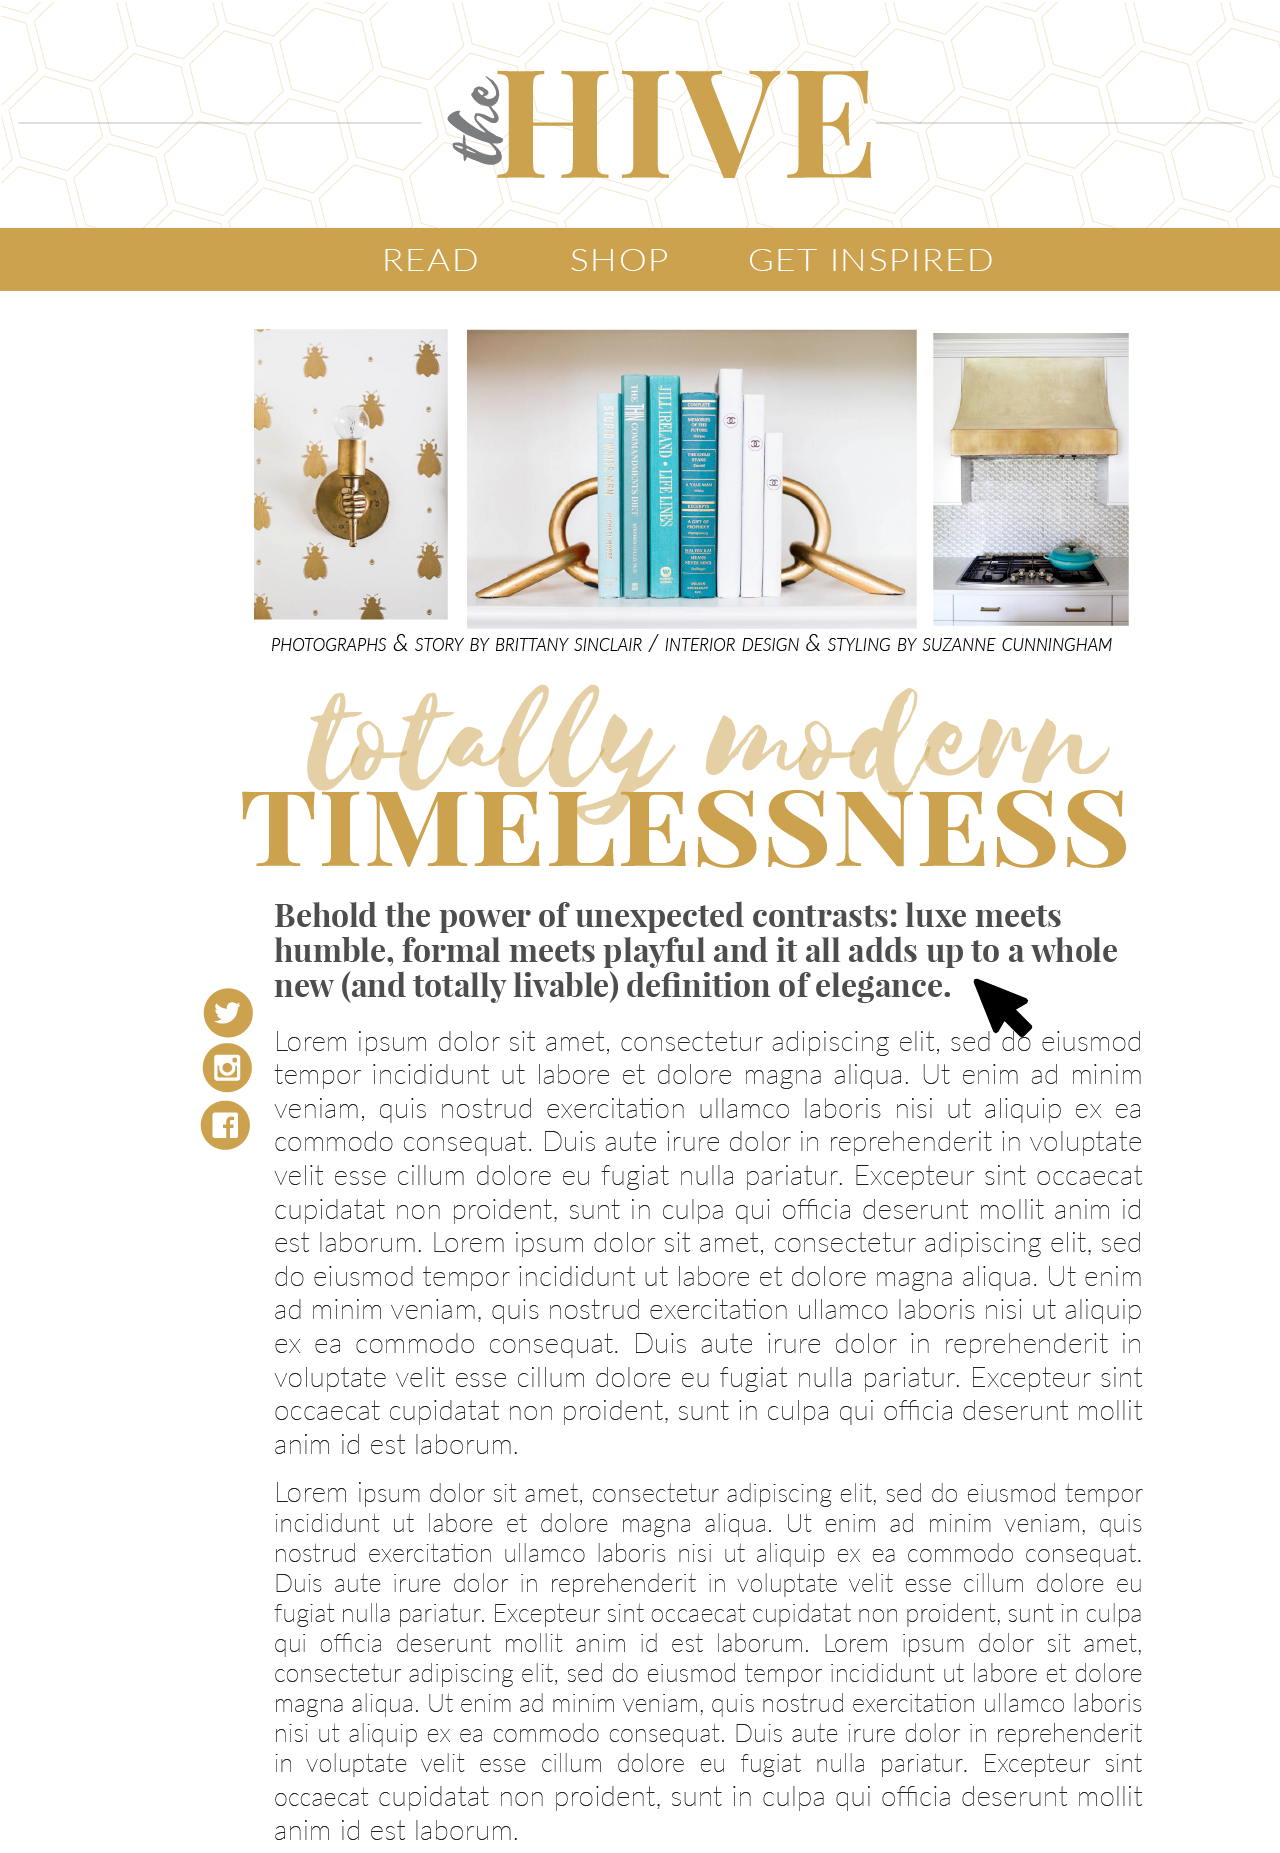 Article page for the website of a fictional interior design publication